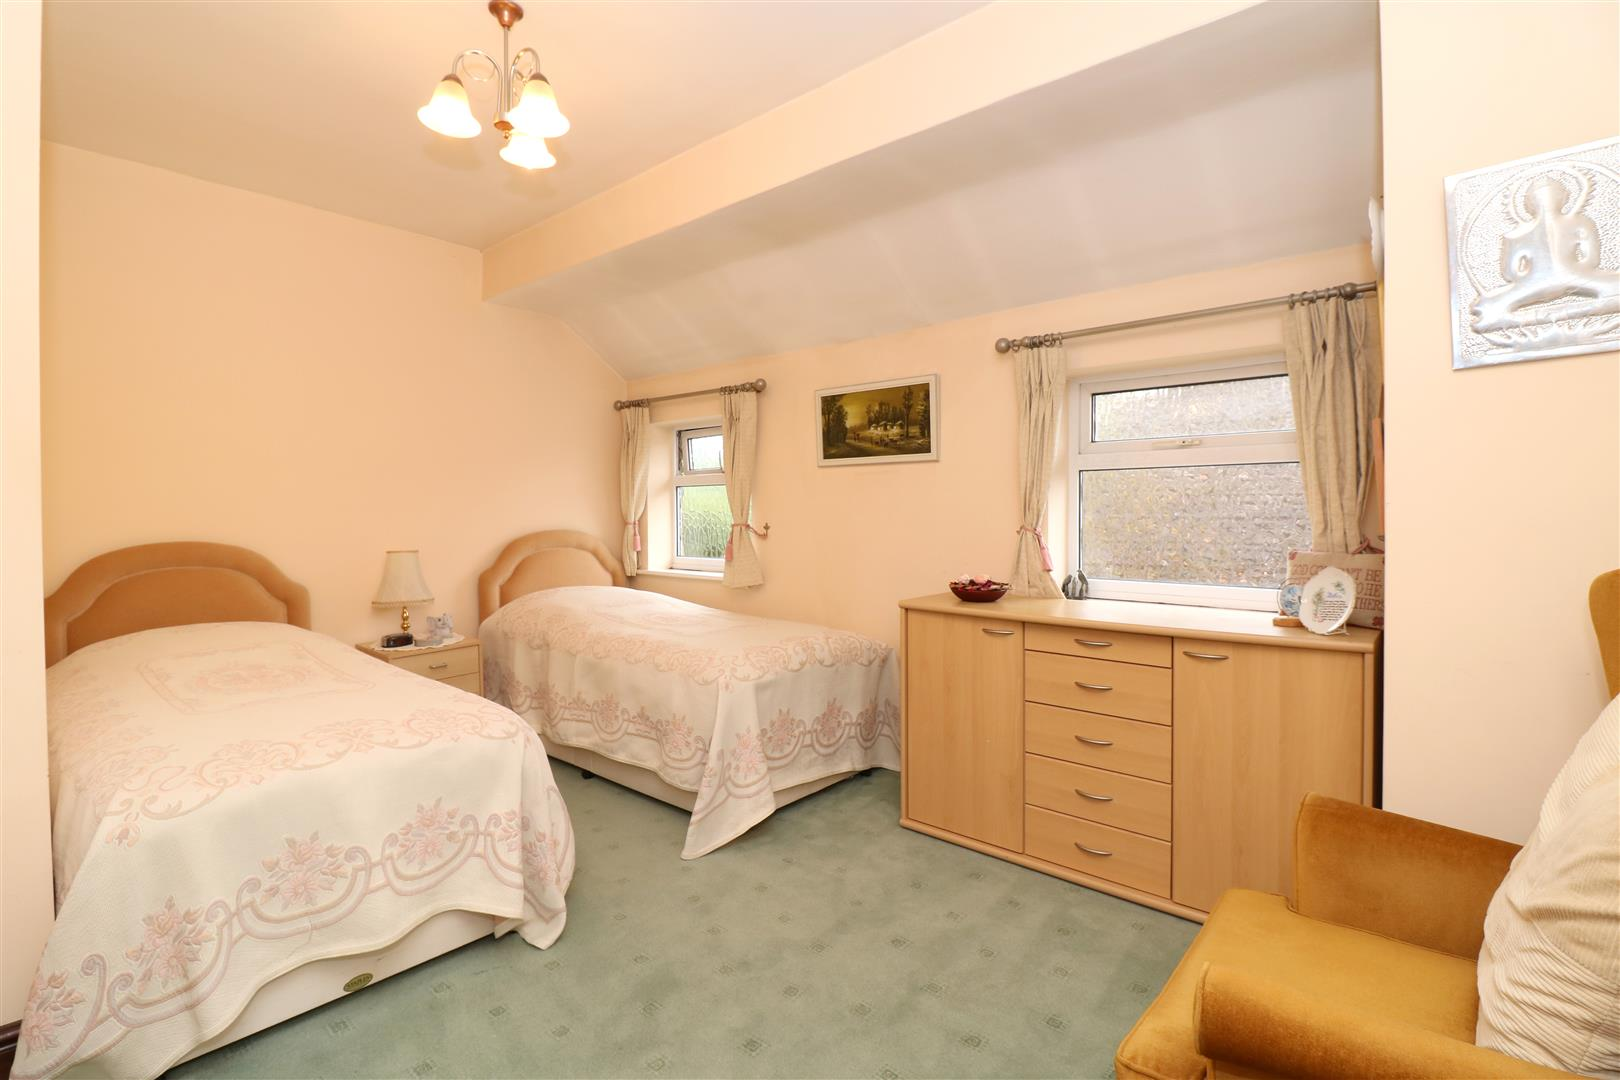 4 bed House for sale in Links Drive, Radlett - (Property Image 10)